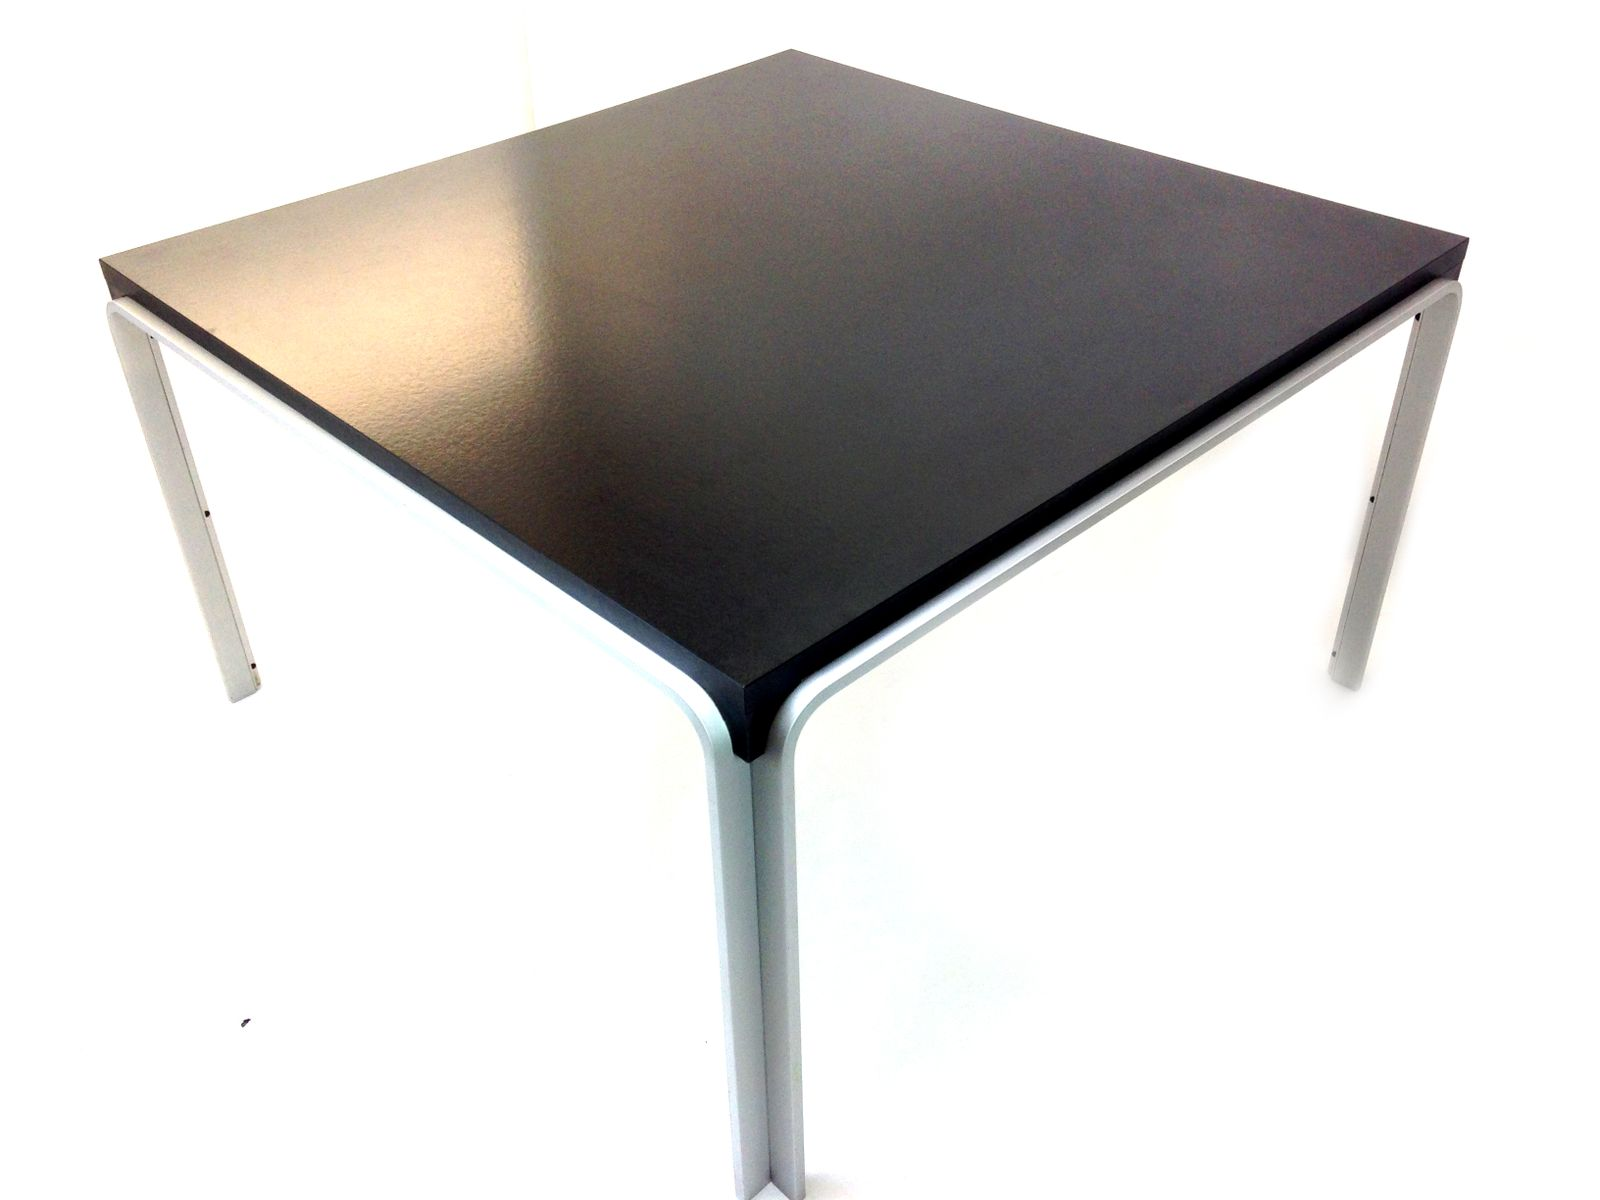 sleek dining table by pierre mazairac for pastoe 1972 for sale at pamono. Black Bedroom Furniture Sets. Home Design Ideas